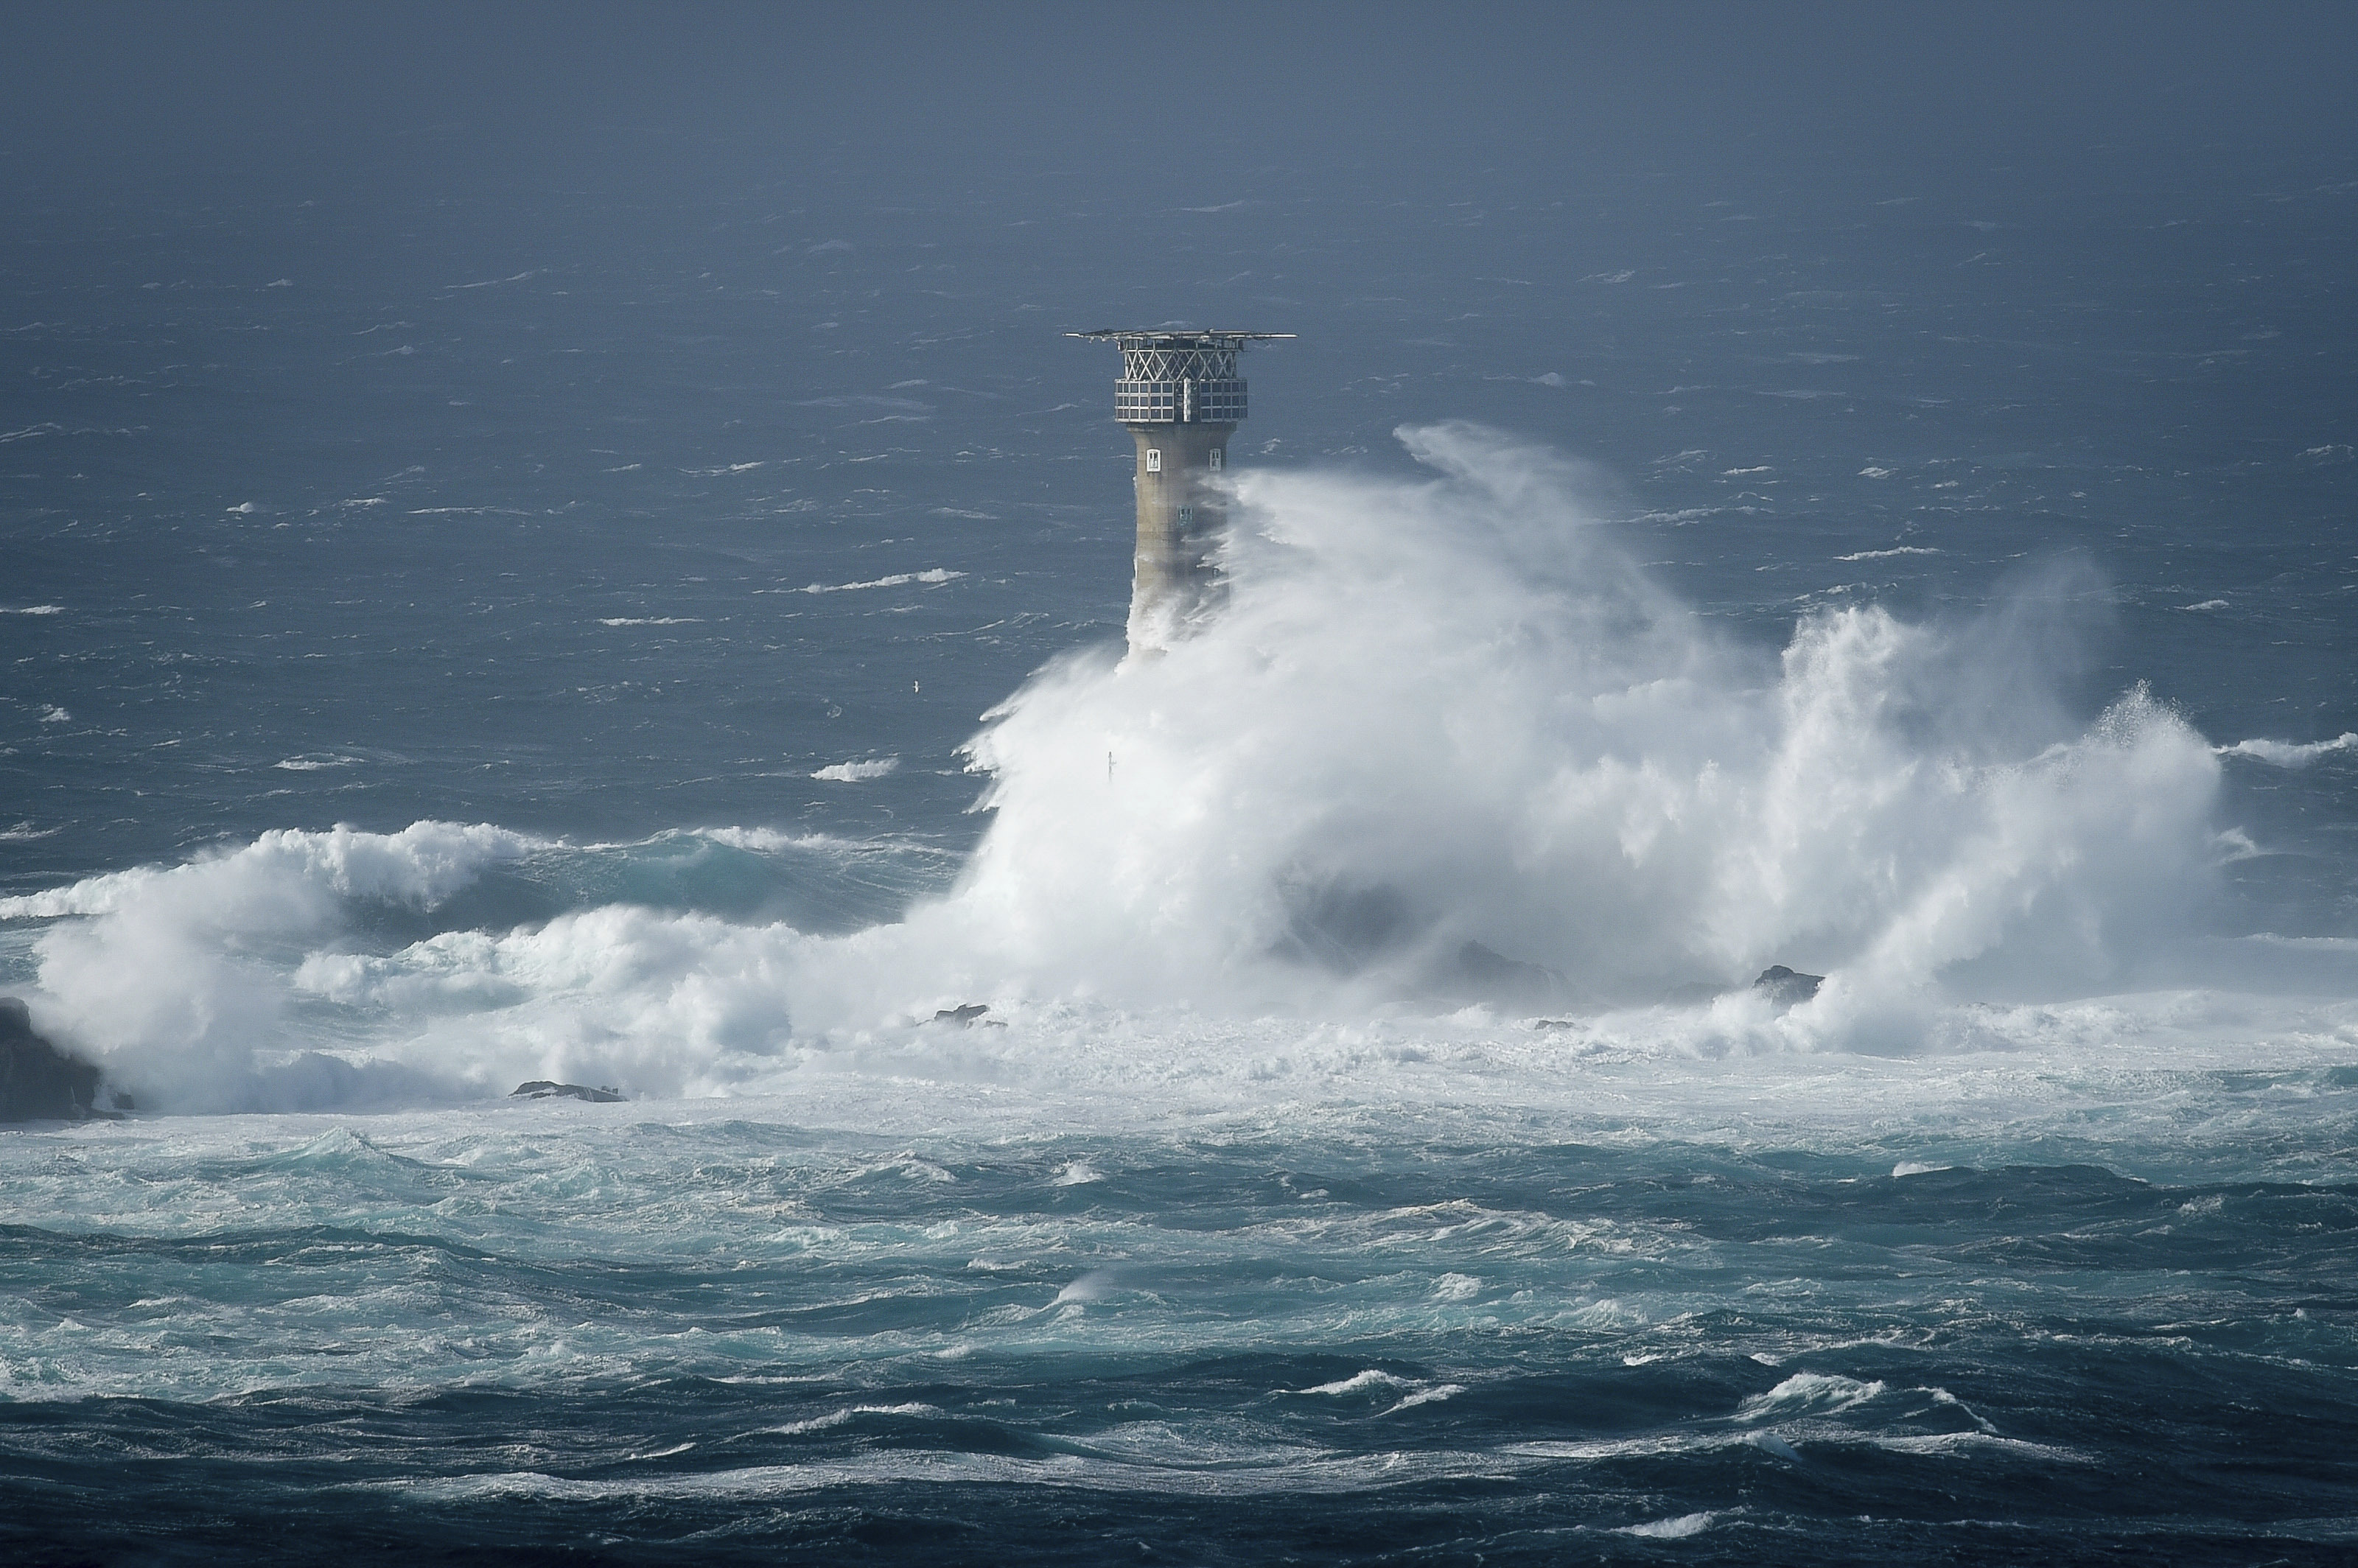 Waves break on Longships lighthouse off the coast of Lands End, southwestern England, as the remnants of  Hurricane Ophelia begins to hit parts of Britain and Ireland. Ireland's meteorological service is predicting wind gusts of 120 kph to 150 kph (75 mph to 93 mph), sparking fears of travel chaos. Some flights have been cancelled, and aviation officials are warning travelers to check the latest information before going to the airport Monday.  (Liam McBurney/PA via AP)